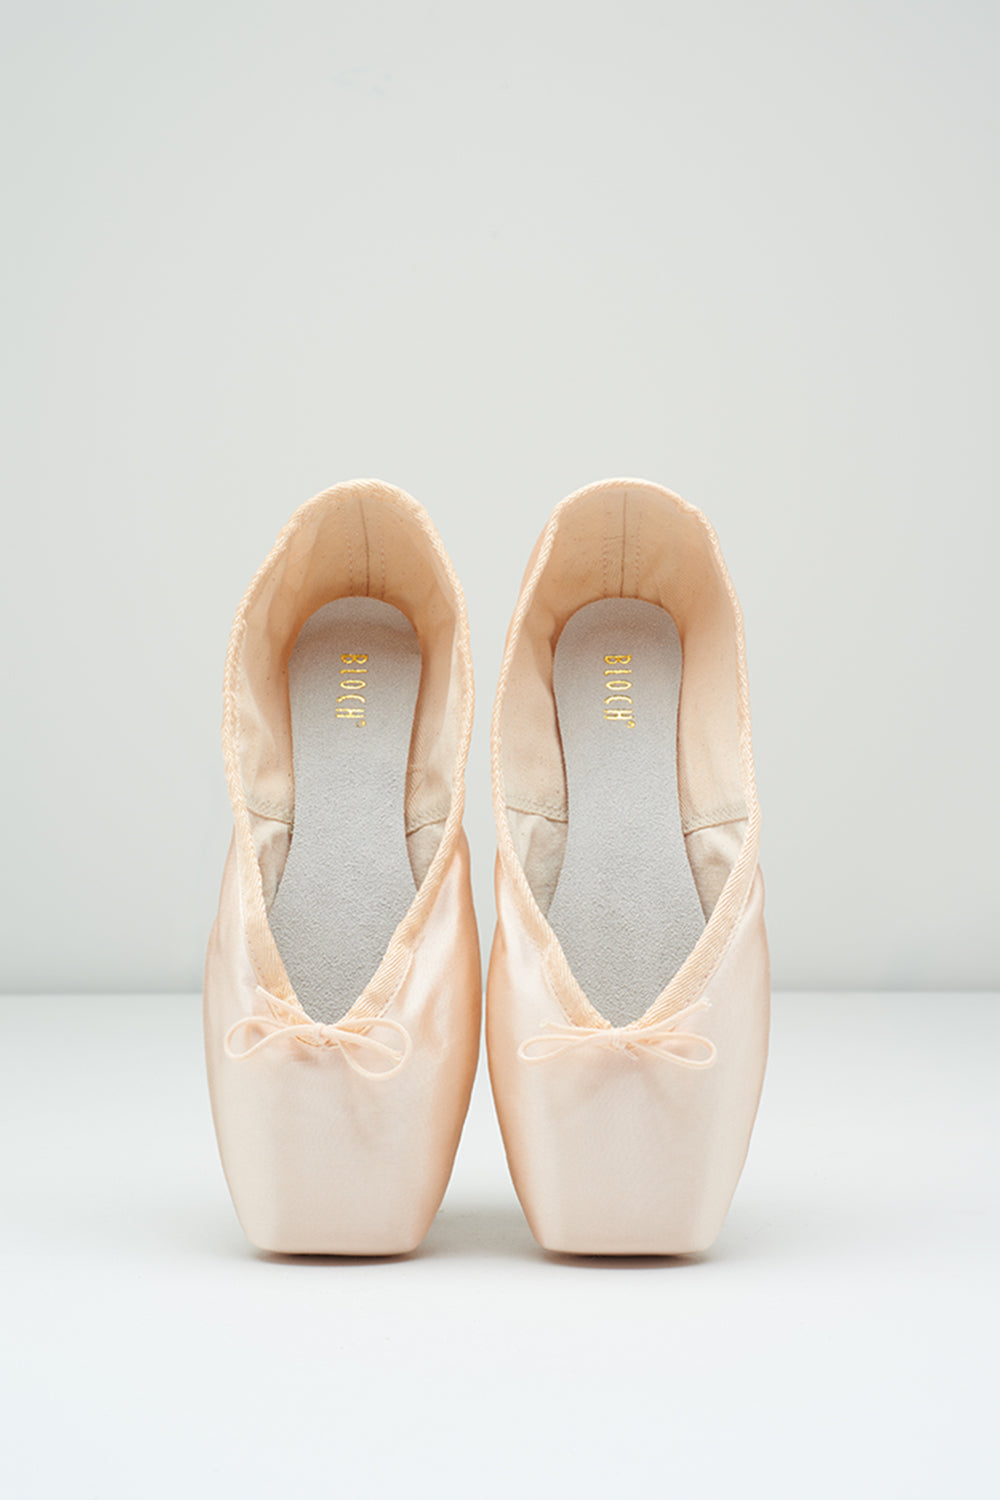 Heritage Long Length Pointe Shoes - BLOCH US